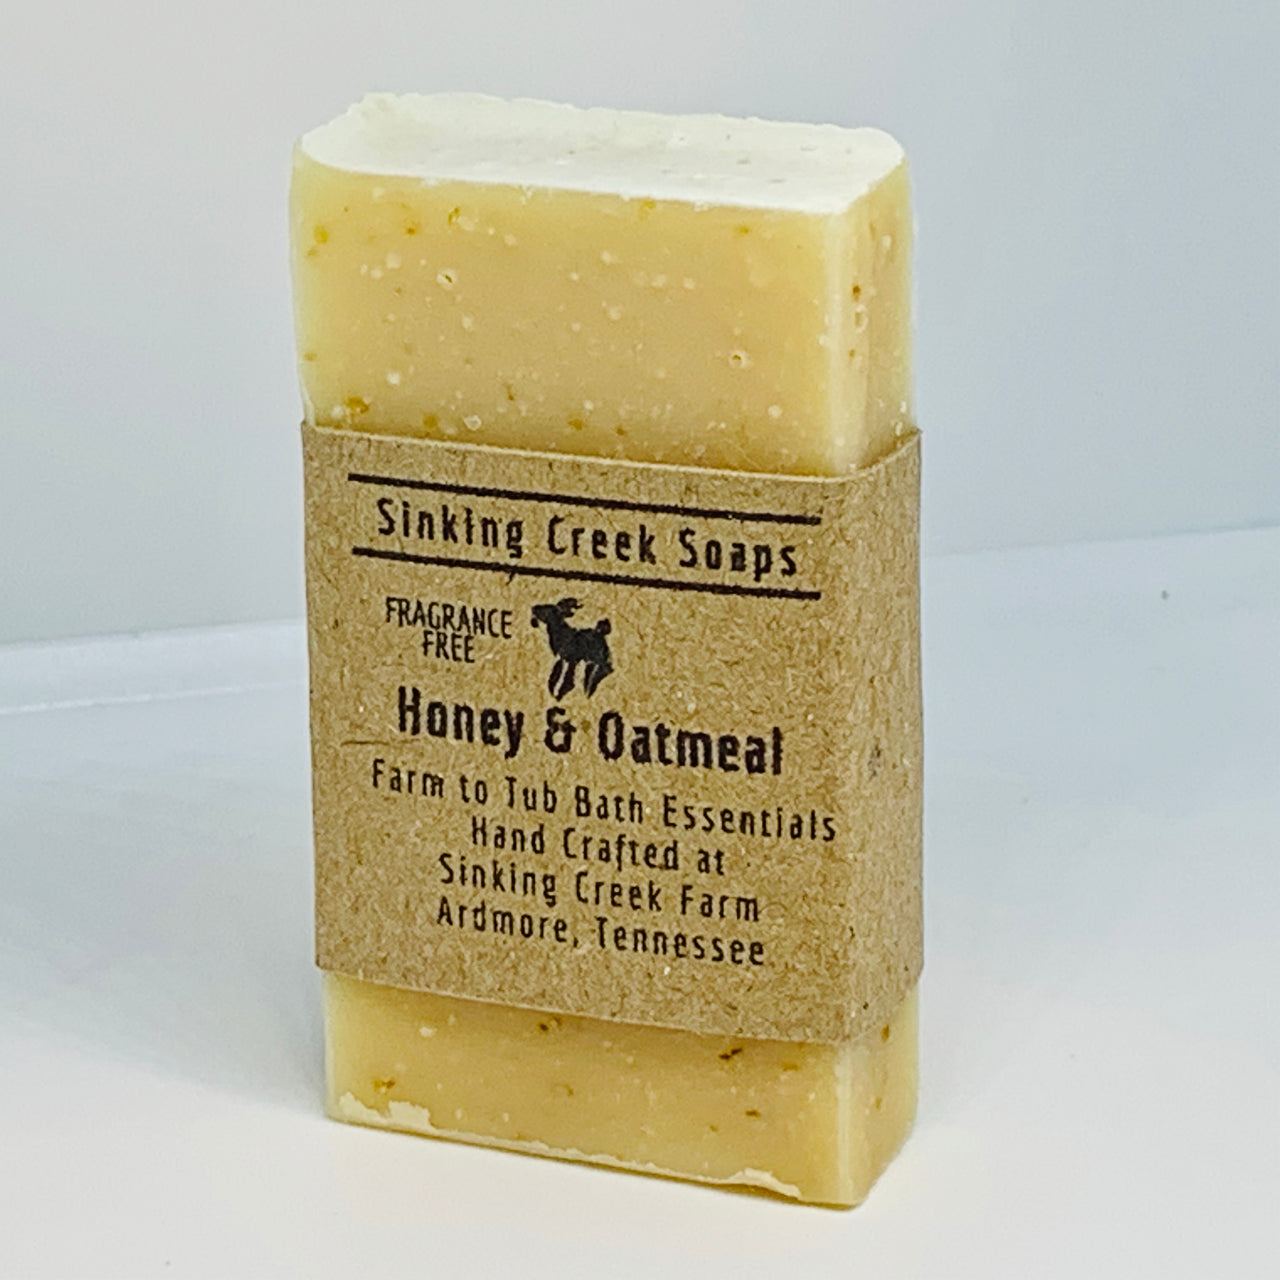 Honey and Oatmeal Goat Milk Soap (Fragrance Free)